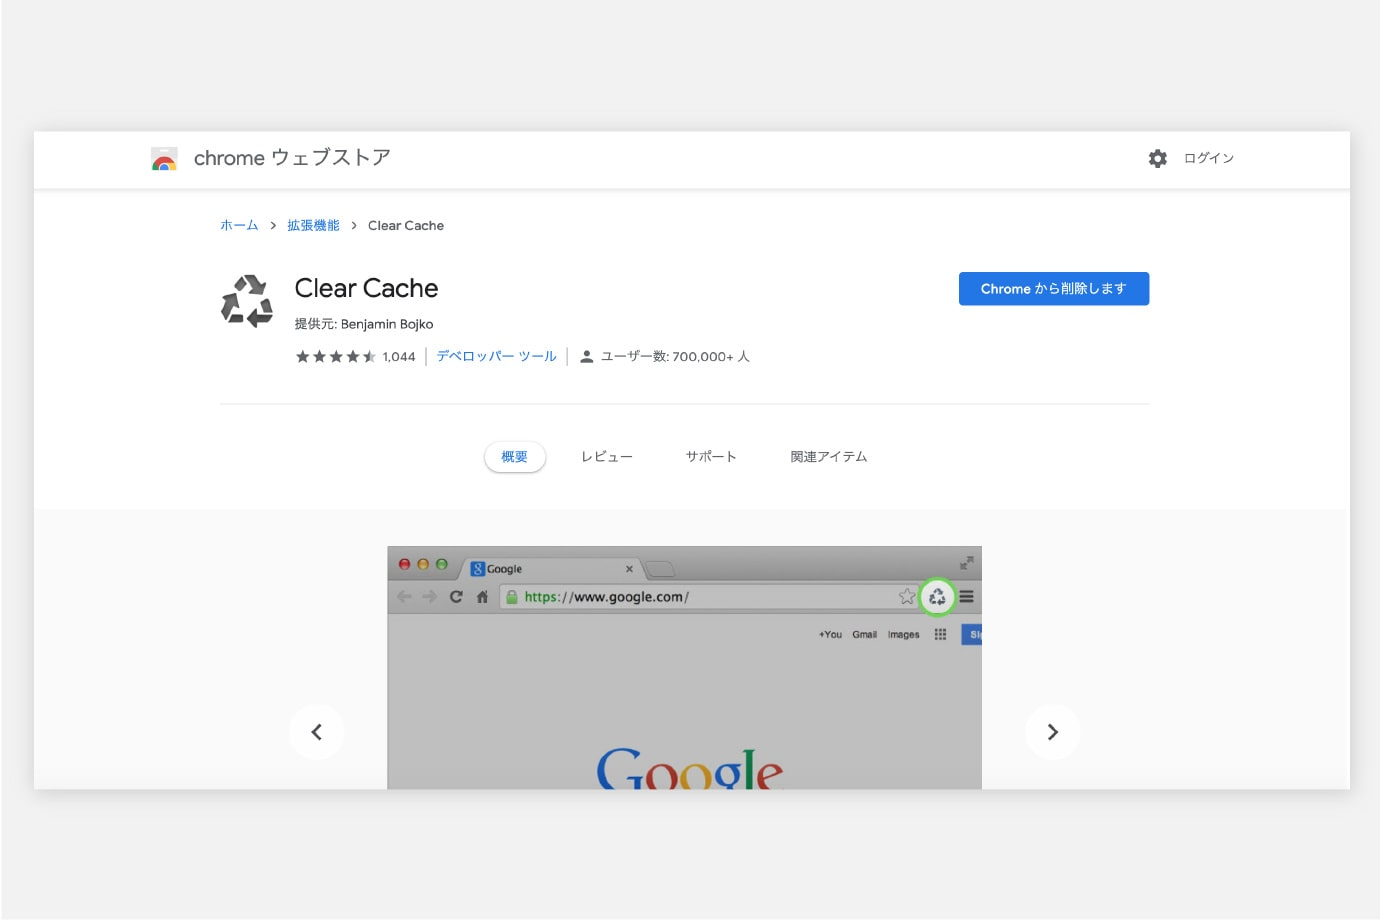 Clear Cache Chromeダウンロード画面